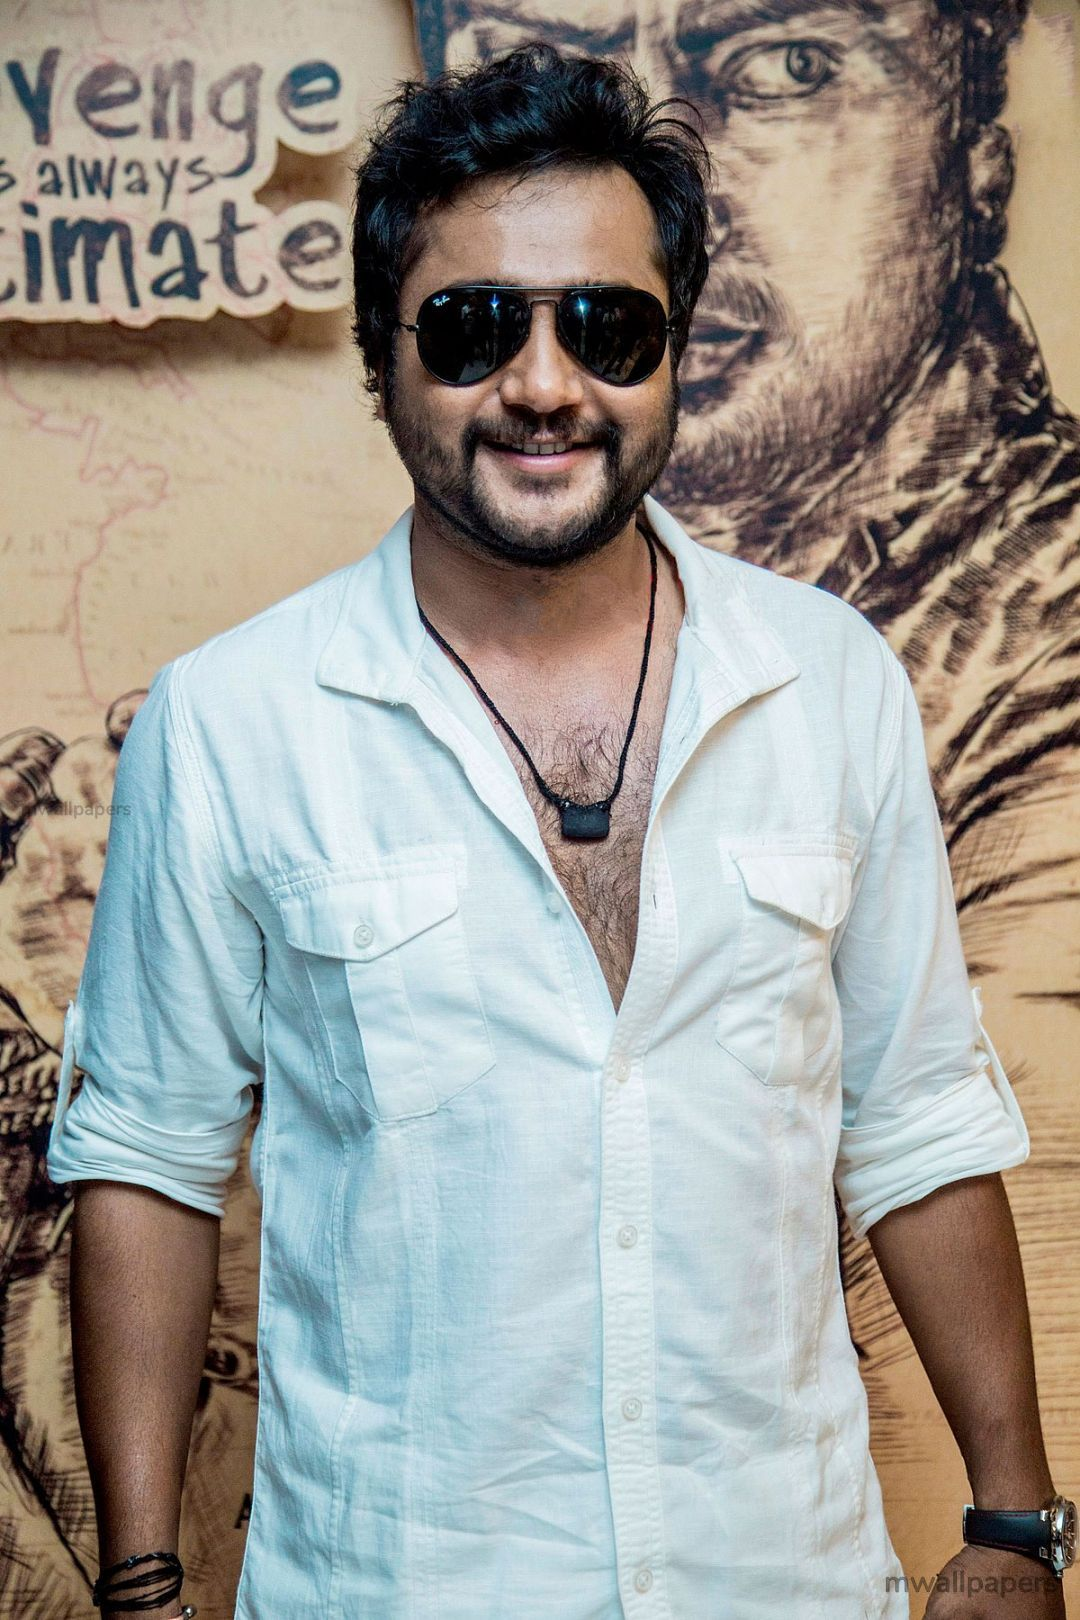 bobby simha Best HD Photos (1080p) (32416) - bobby simha, actor, kollywood, tollywood, mollywood, hd photos